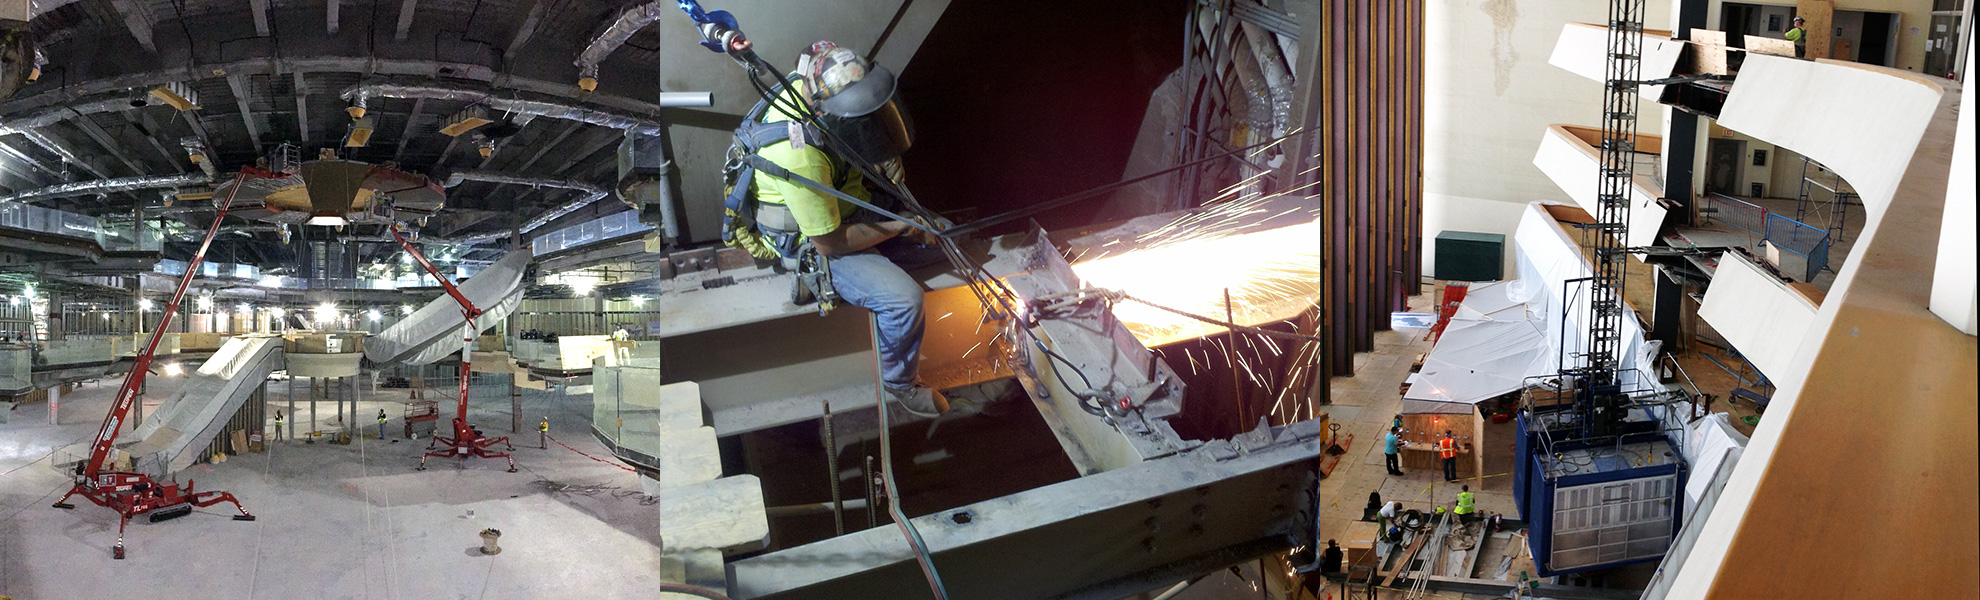 Interior Demolition Contractors Services Gut Out Specialists and Renovation Experts